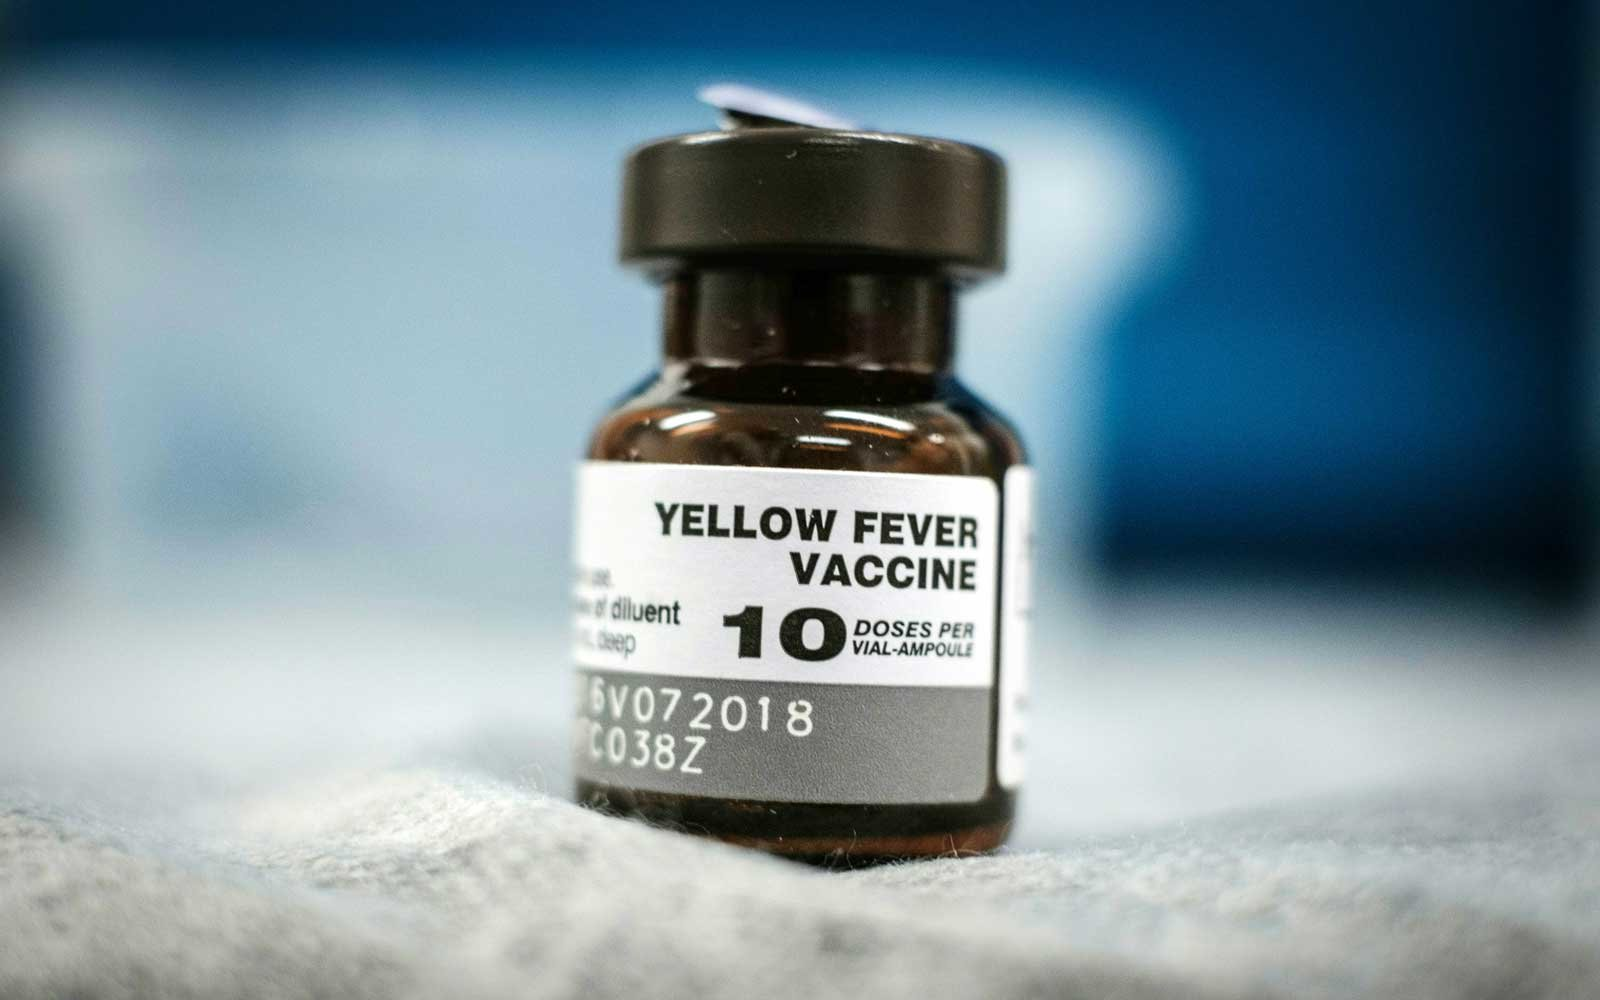 viaggio, yellowe fever, vaccini, no-vax